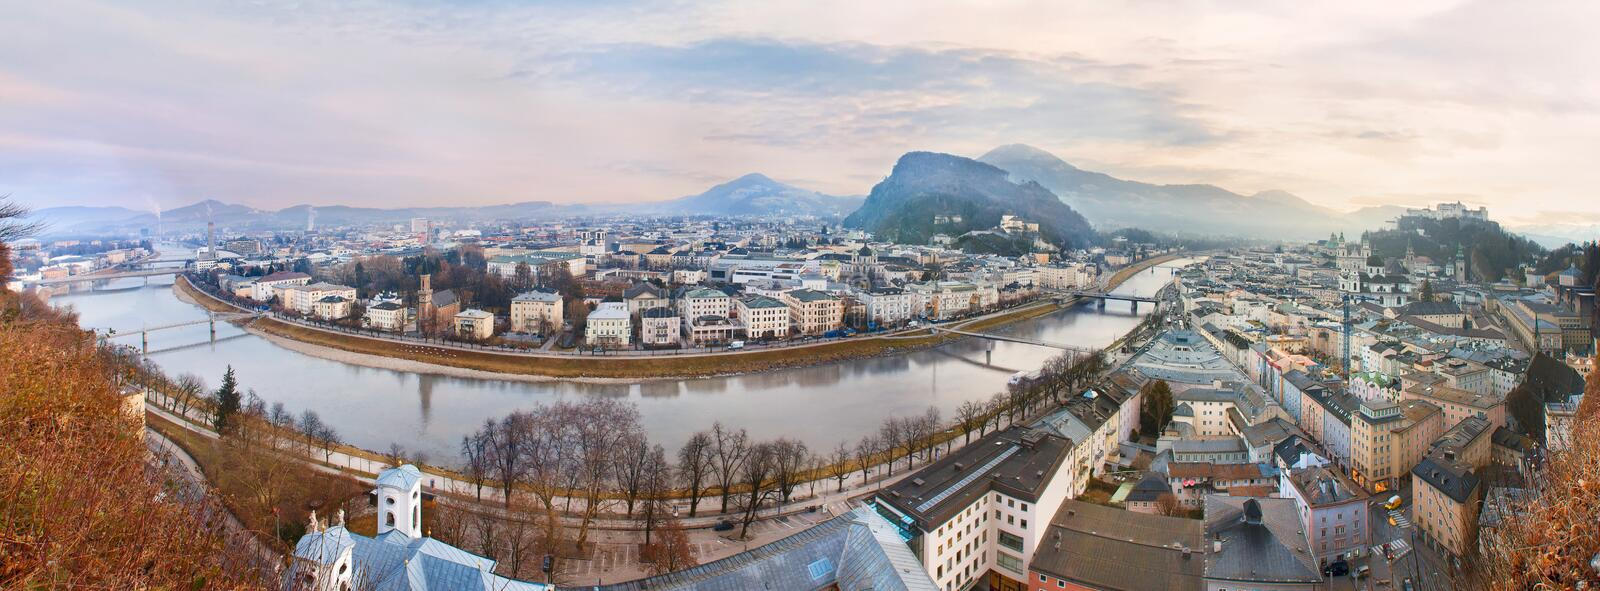 Sunrise view of the historic city Salzburg stock images